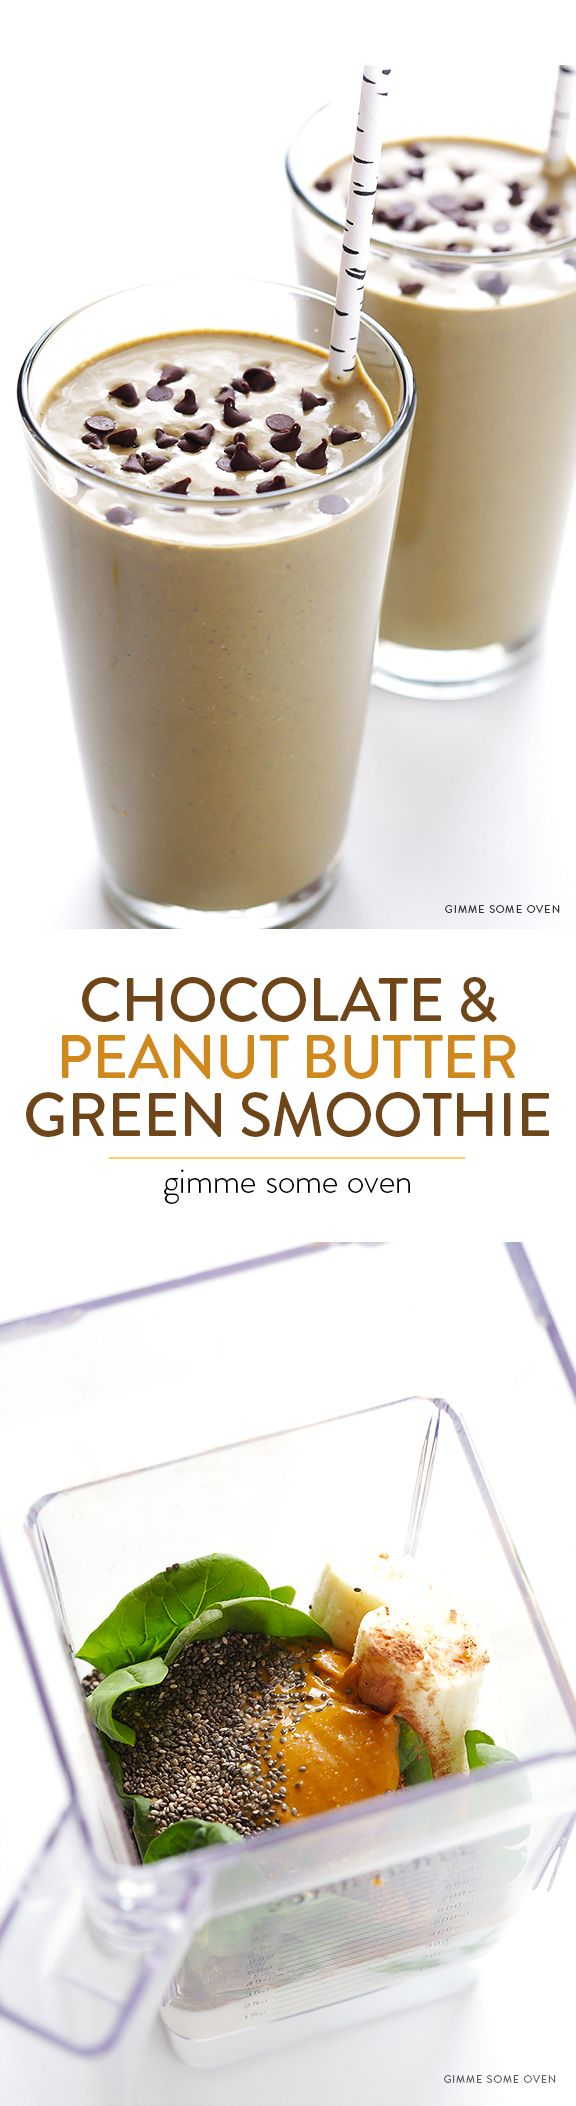 cheap flights compare different sites of lymph Chocolate Peanut Butter Green Smoothie    so good  and also good for you    gimmesomeoven com